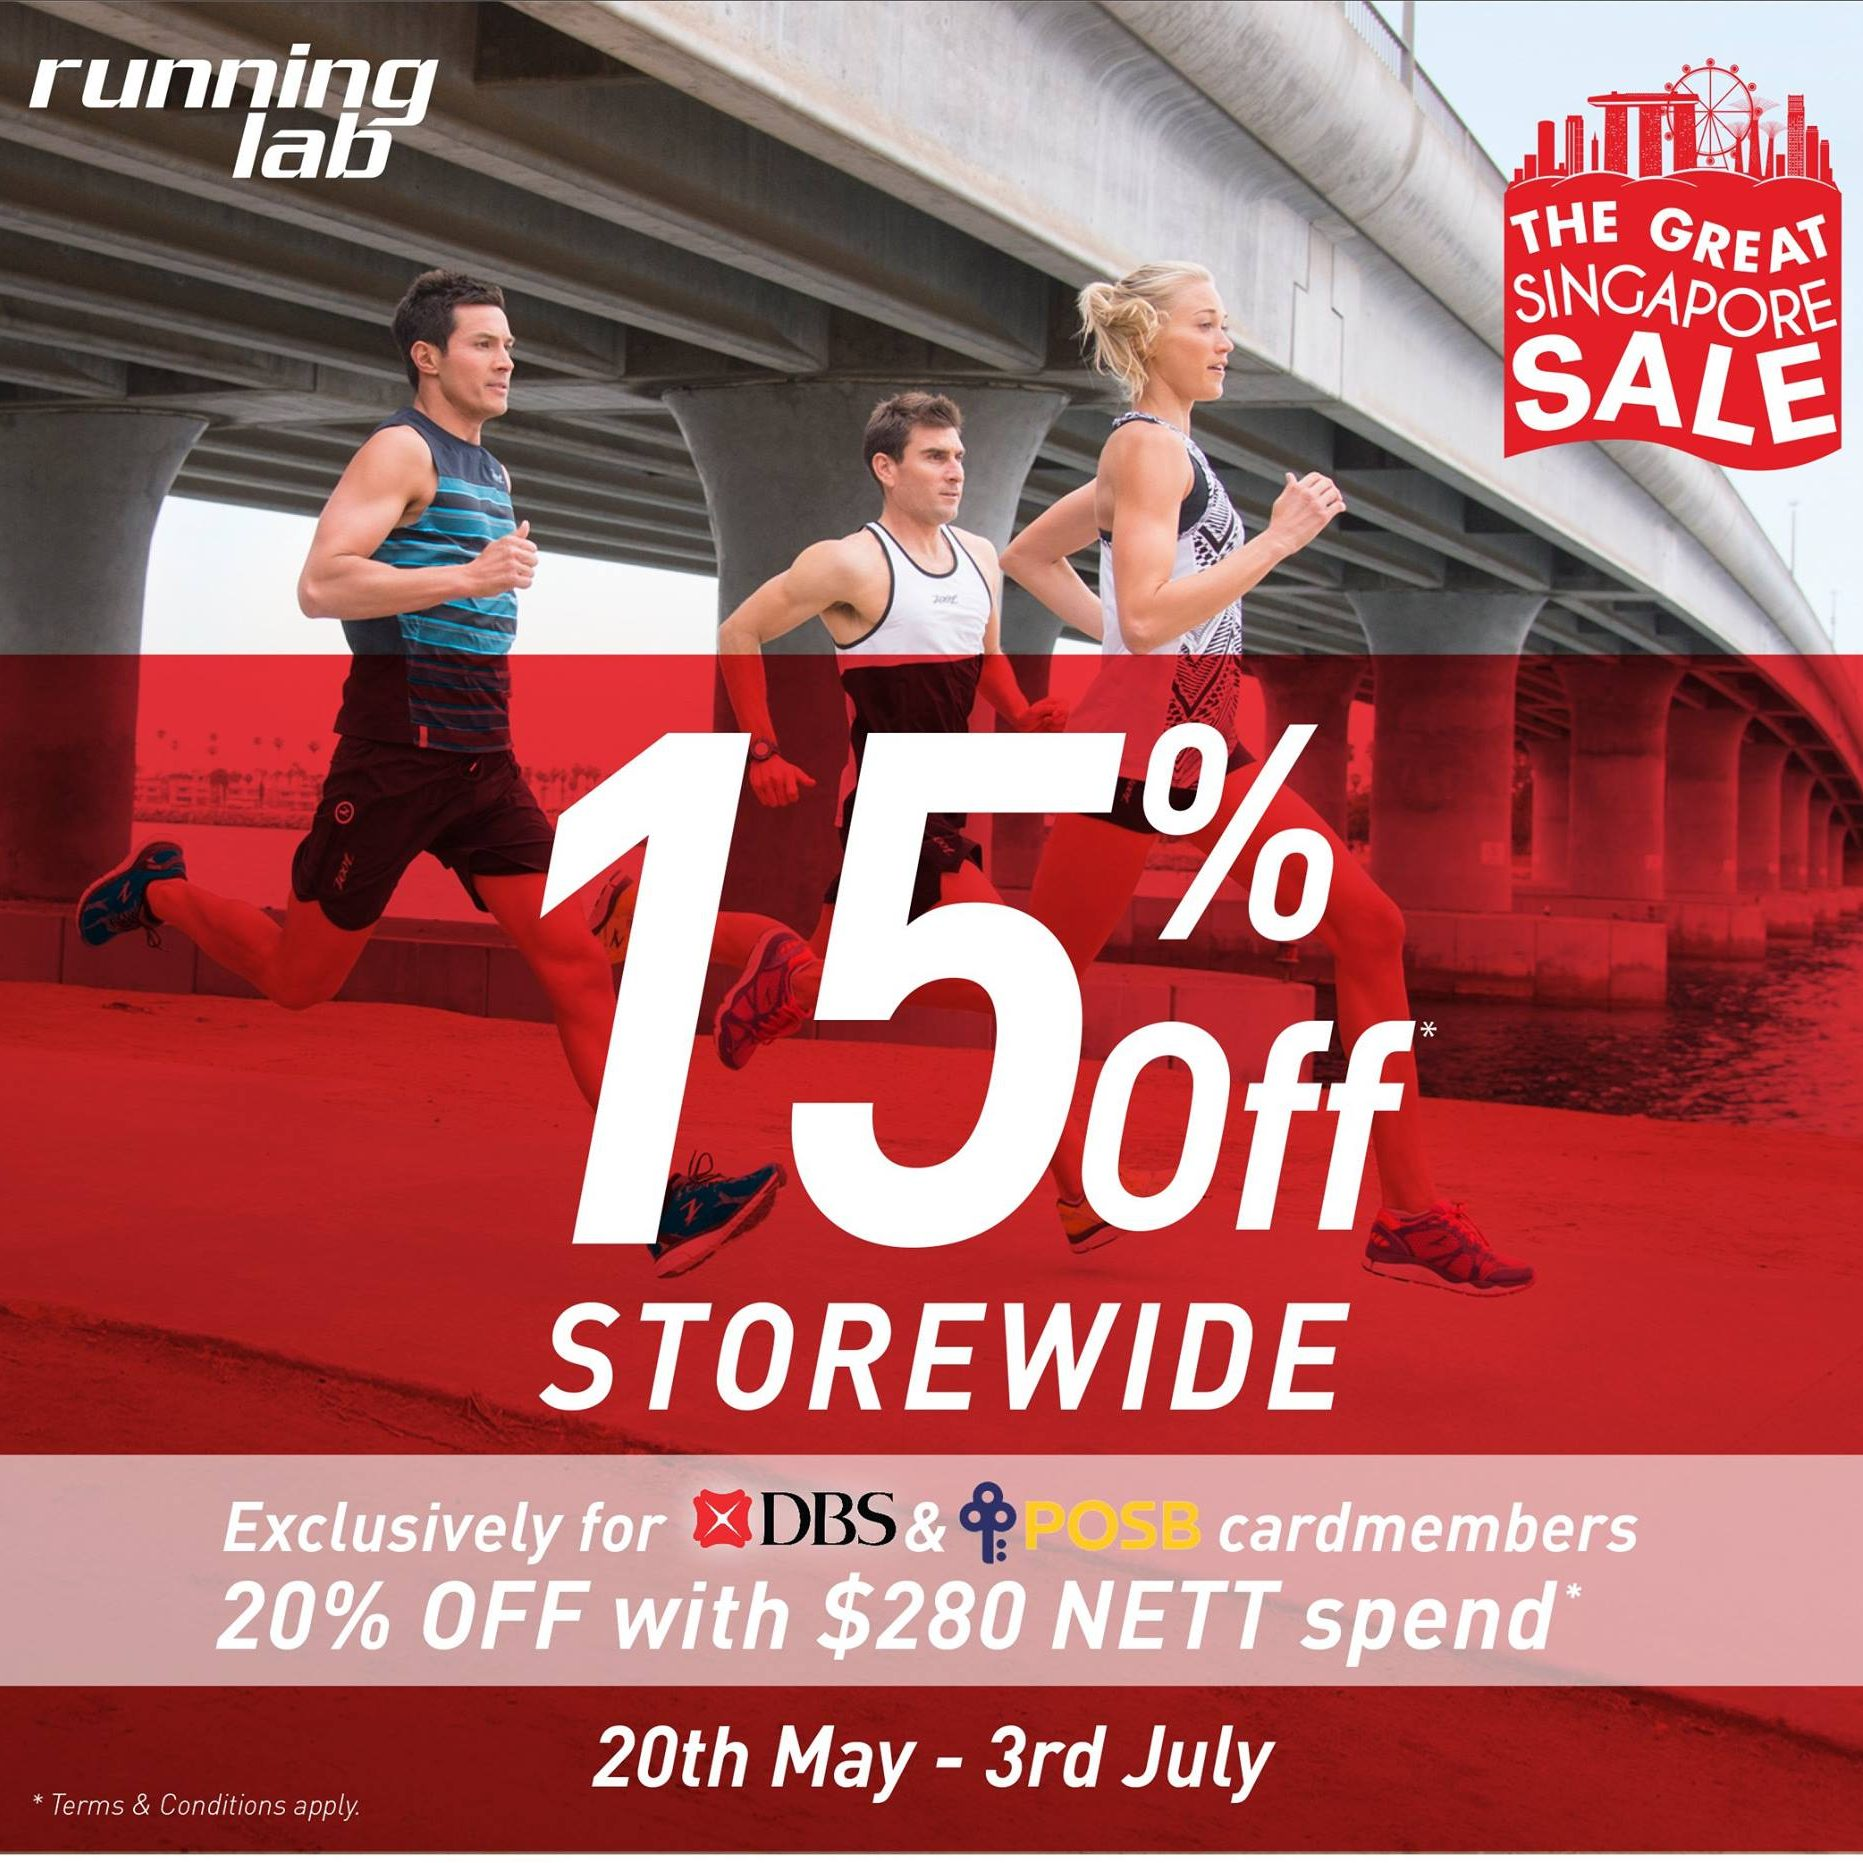 Running Lab SG GSS Up to 15% Off Storewide 20 May to 3 Jul 2016